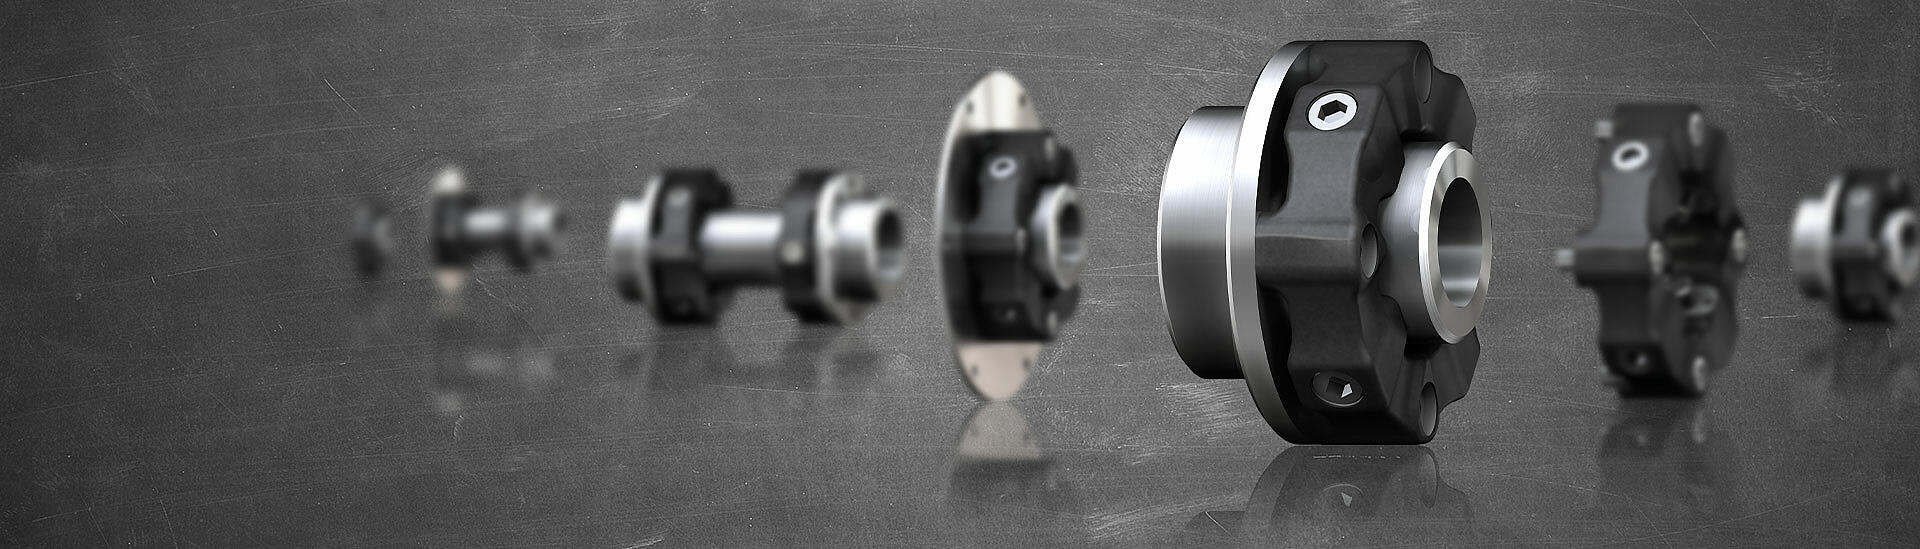 EVOLASTIC highly flexible couplings | KTR Systems